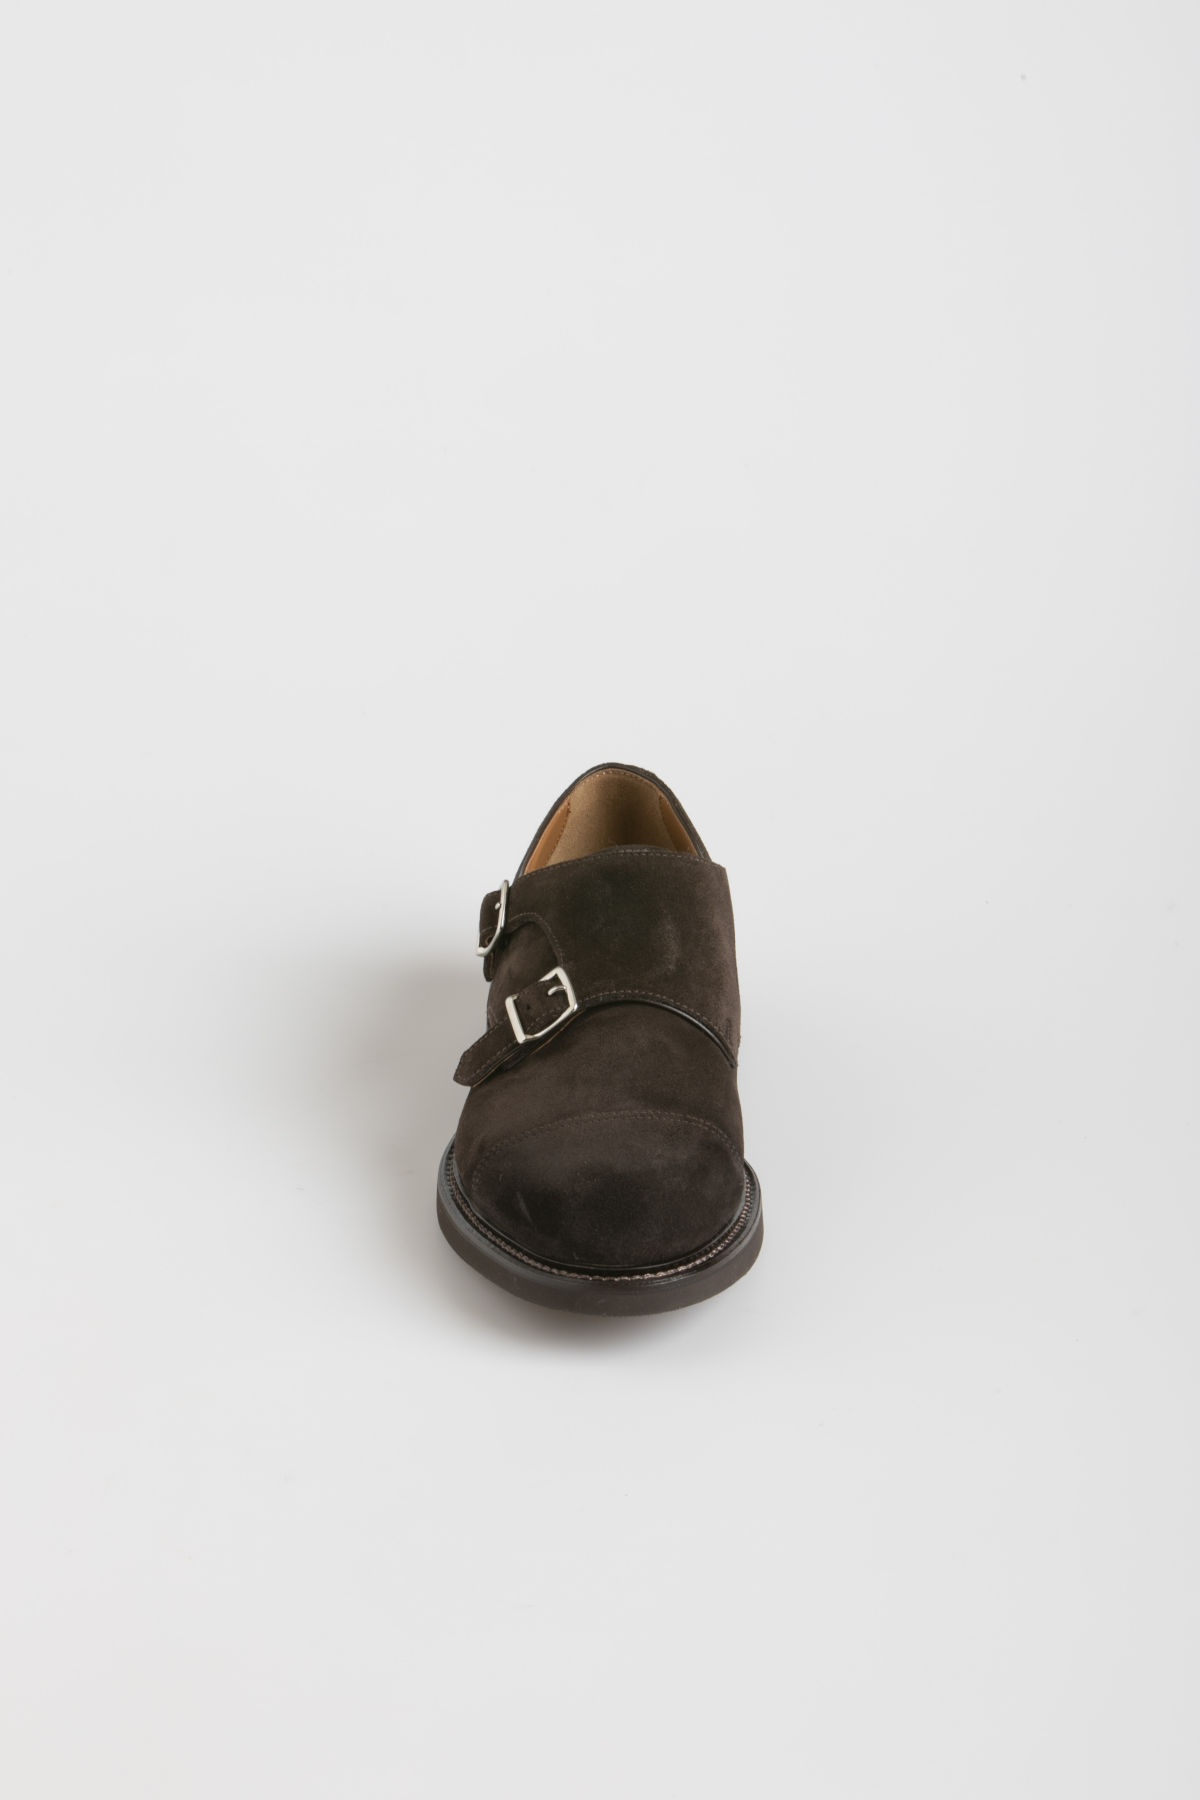 Shoes for man DOUCAL'S F/W